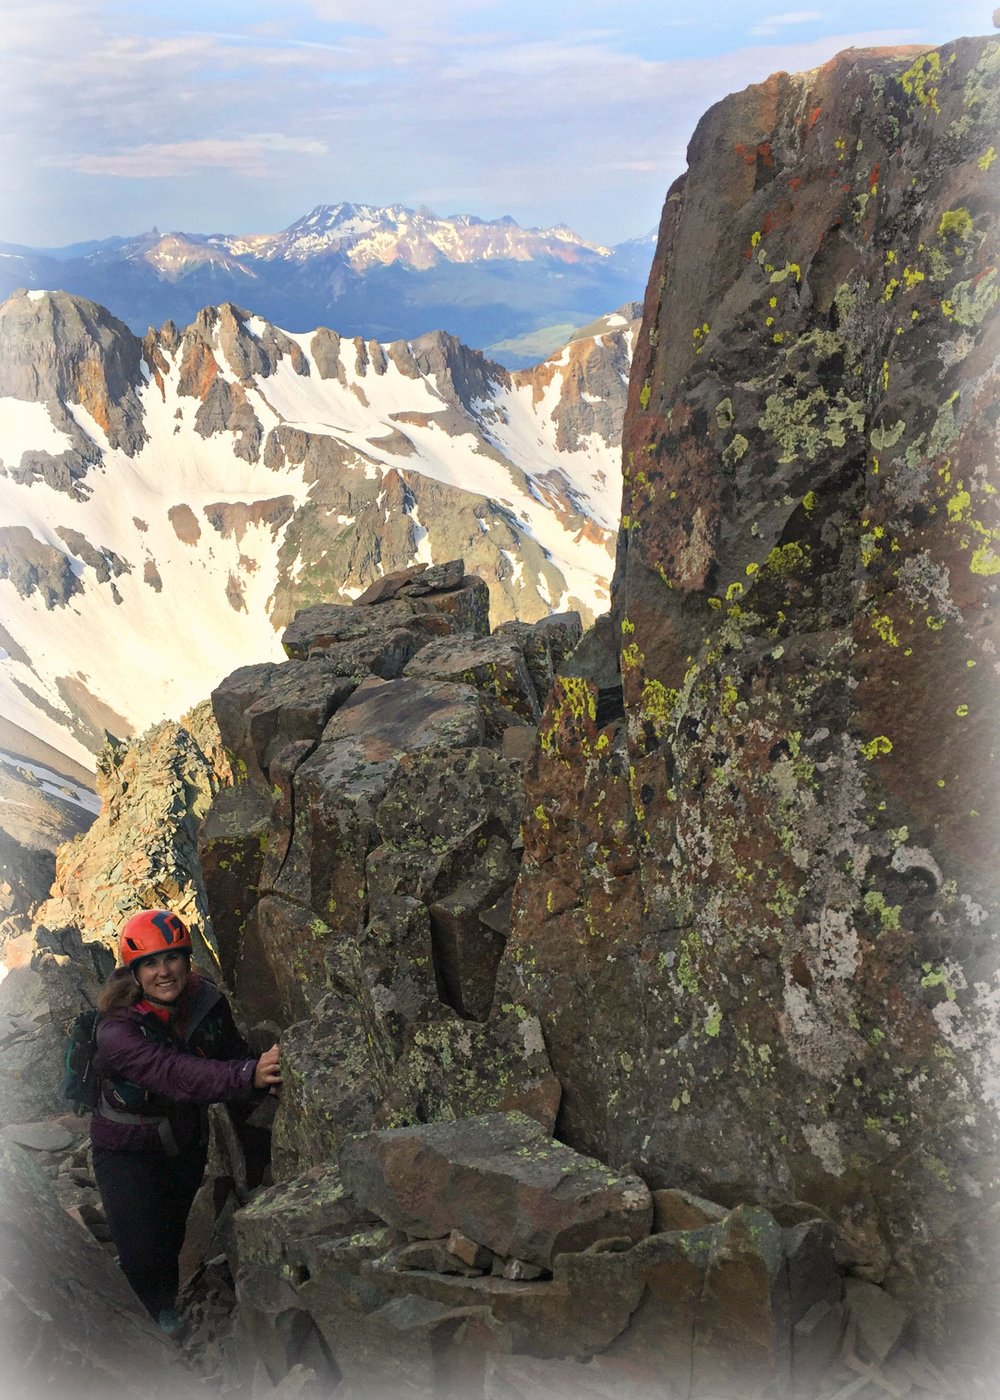 Climbing in Colorado with Amber, friend and author of the blog post